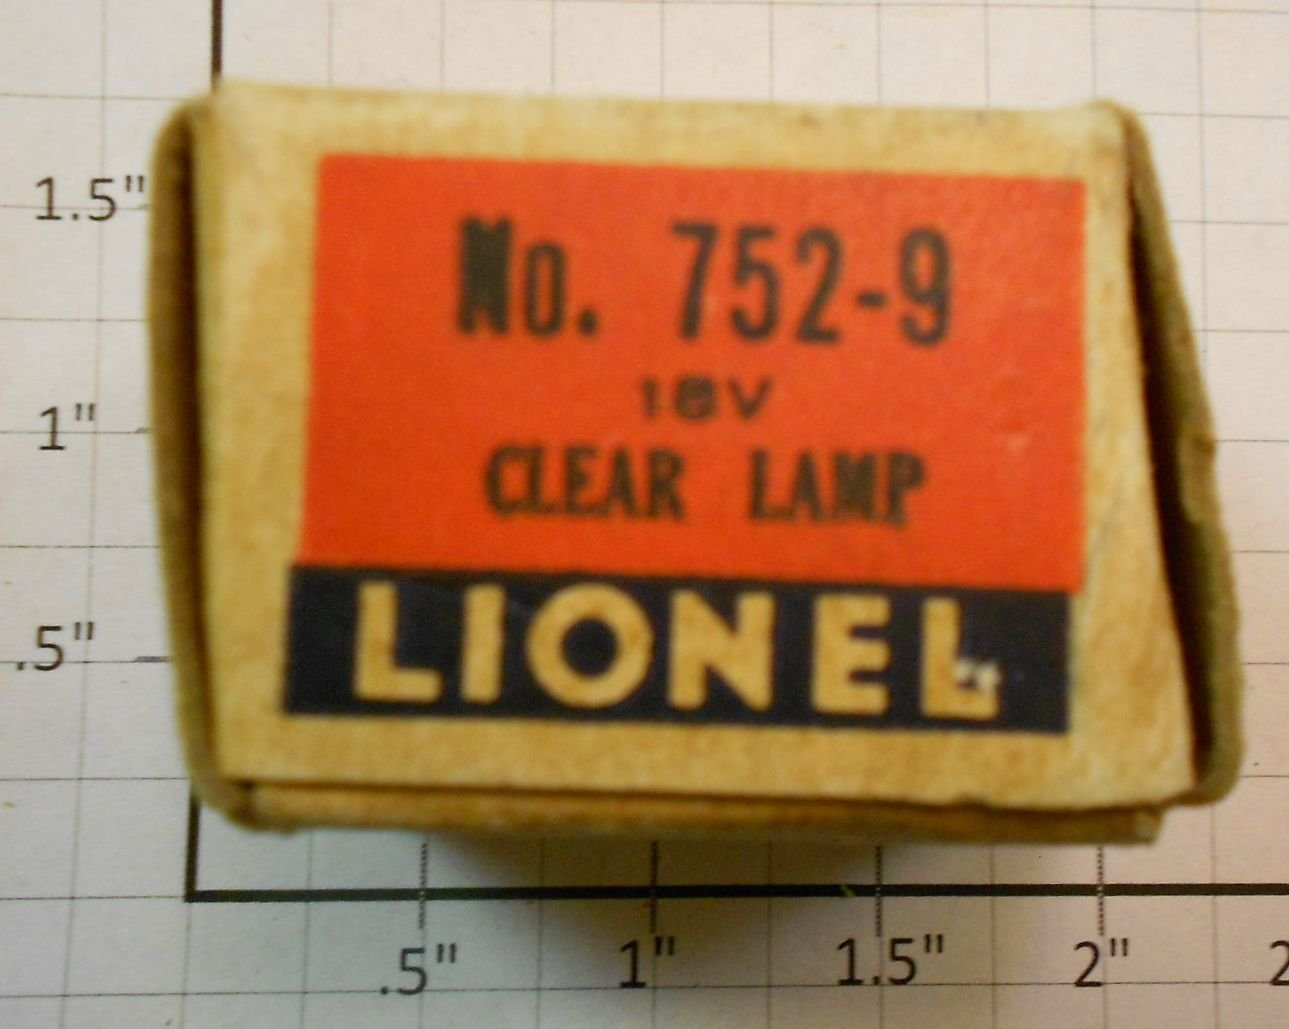 Lionel 752-9 18 Volt Clear Bulb in Separate Sale Box Condition: Part (N/ATrainz does not provide grading for parts.Standards for all toy train related accessory items apply to the visual appearance of the item and do not consider the operating functionality of the equipment.Condition and Grading Standards are subjective, at best, and are intended to act as a guide. )Operational Status: FunctionalThis part is in workable condition.Original Box: NoManufacturer: LionelModel Number: 752-9Category 1: PartsCategory 2: O ScaleAvailability: Ships in 3 Business Days!We are unable to provide parts lookup service or fitment assistance.The Trainz SKU for this item is P11663944. Track: 11663944 - Parts (1A13H) - 001 - TrainzAuctionGroup00UNK - TDIDUNK